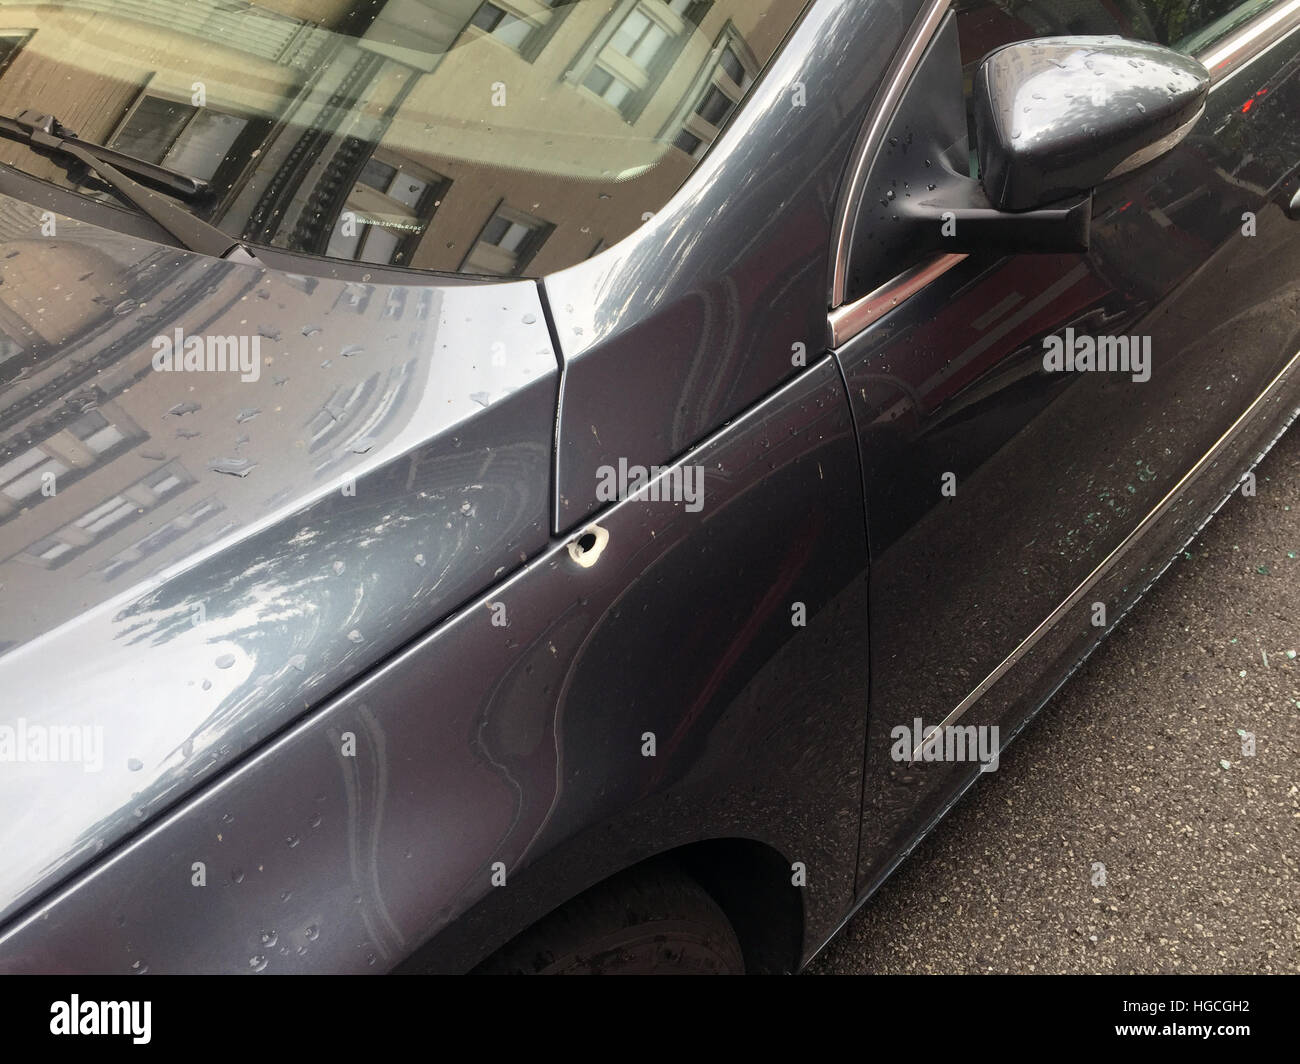 A bullet entered the fender of a car parked in front of a senior citizen home during a drive by shooting in Chicago. - Stock Image